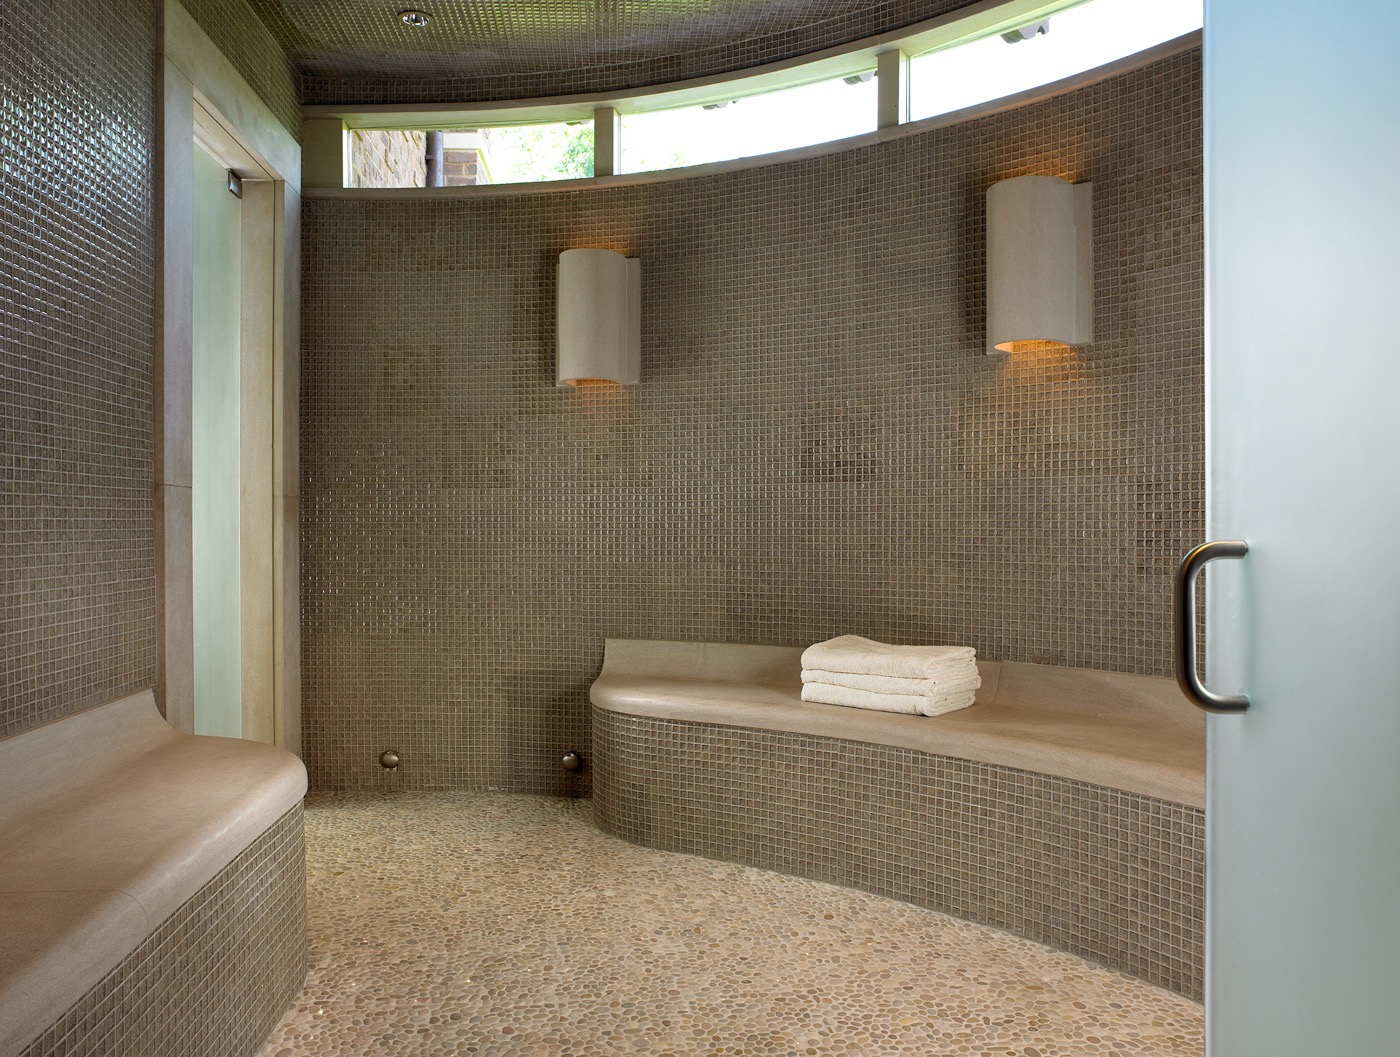 Sleek Sauna Bathroom With Brown Mosaic Tile Wall (View 15 of 21)